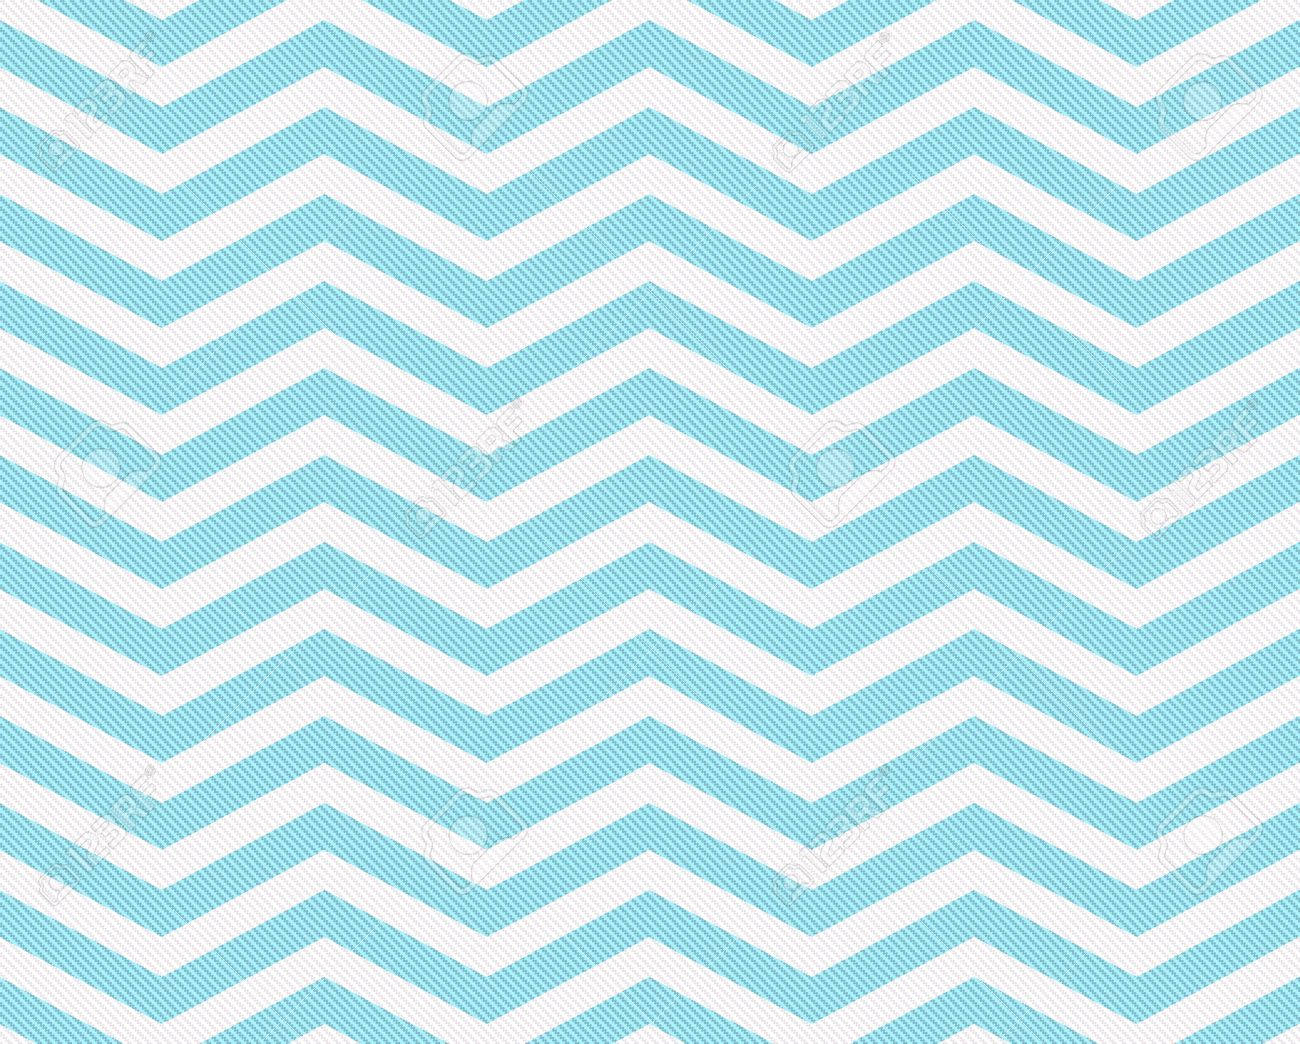 Teal And White Zigzag Textured Fabric Background That Is Seamless ...